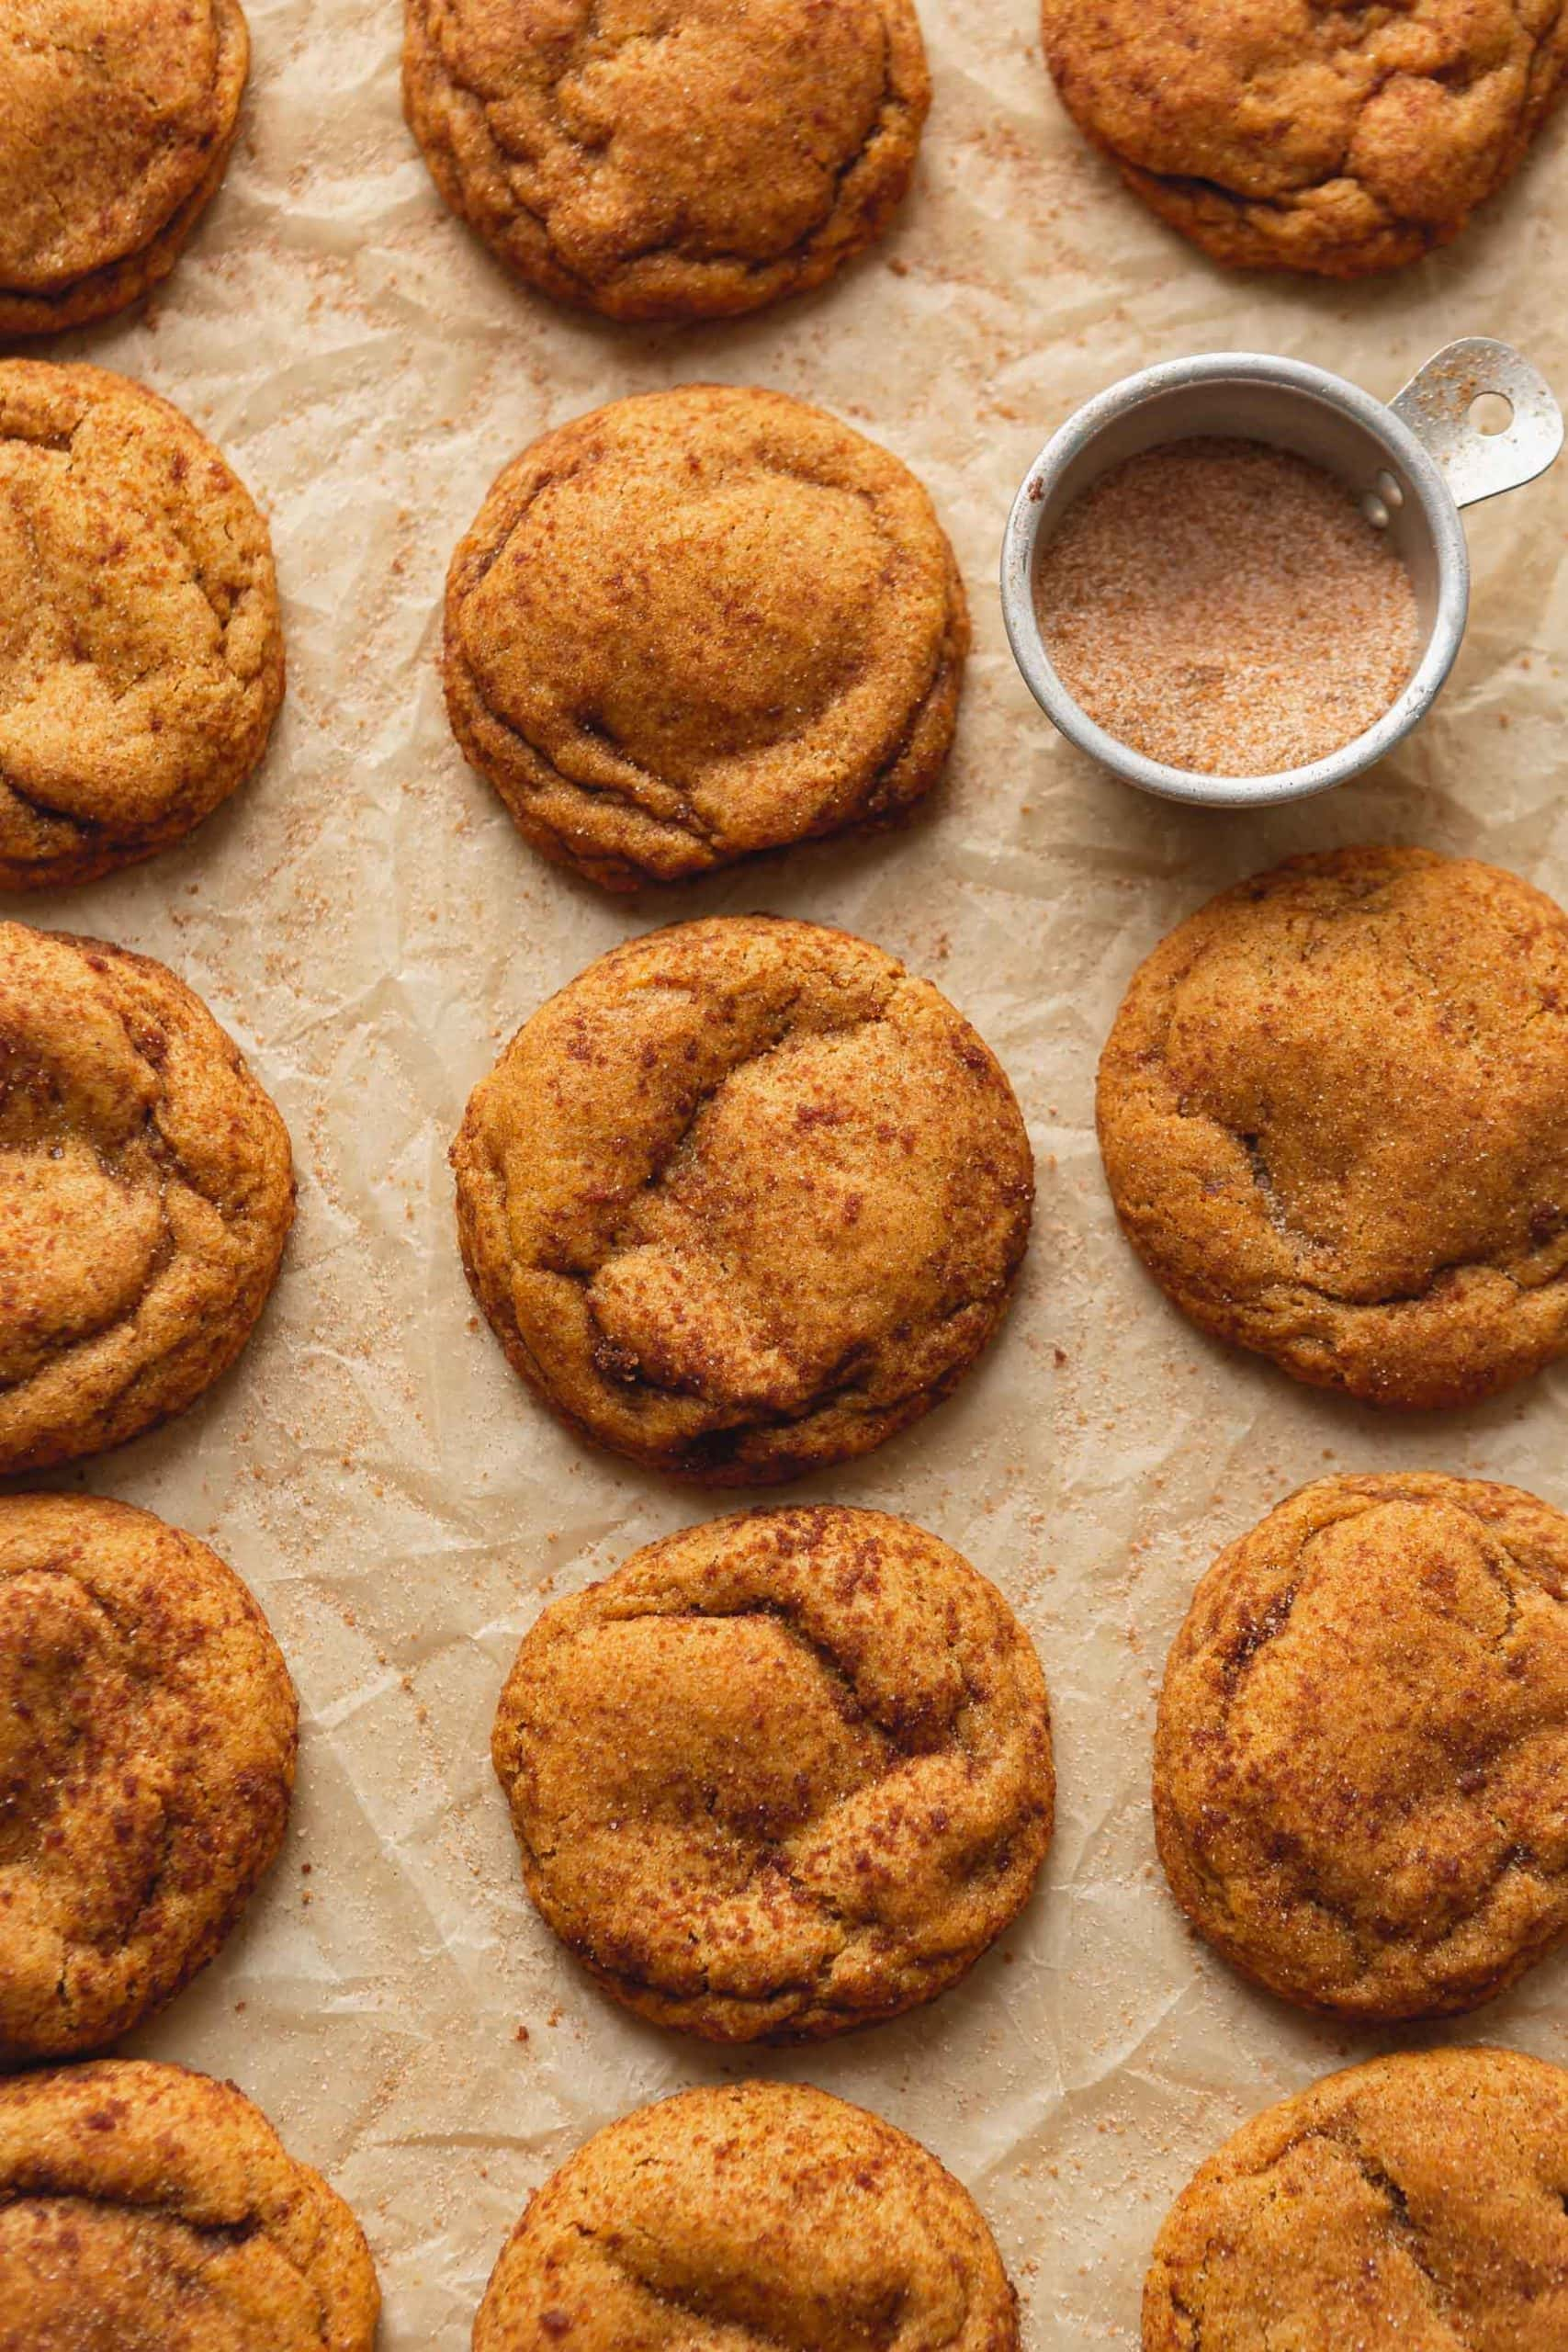 Three rows of chewy pumpkin cookies with a small bowl of cinnamon sugar. The cookies are baked and look soft and chewy.